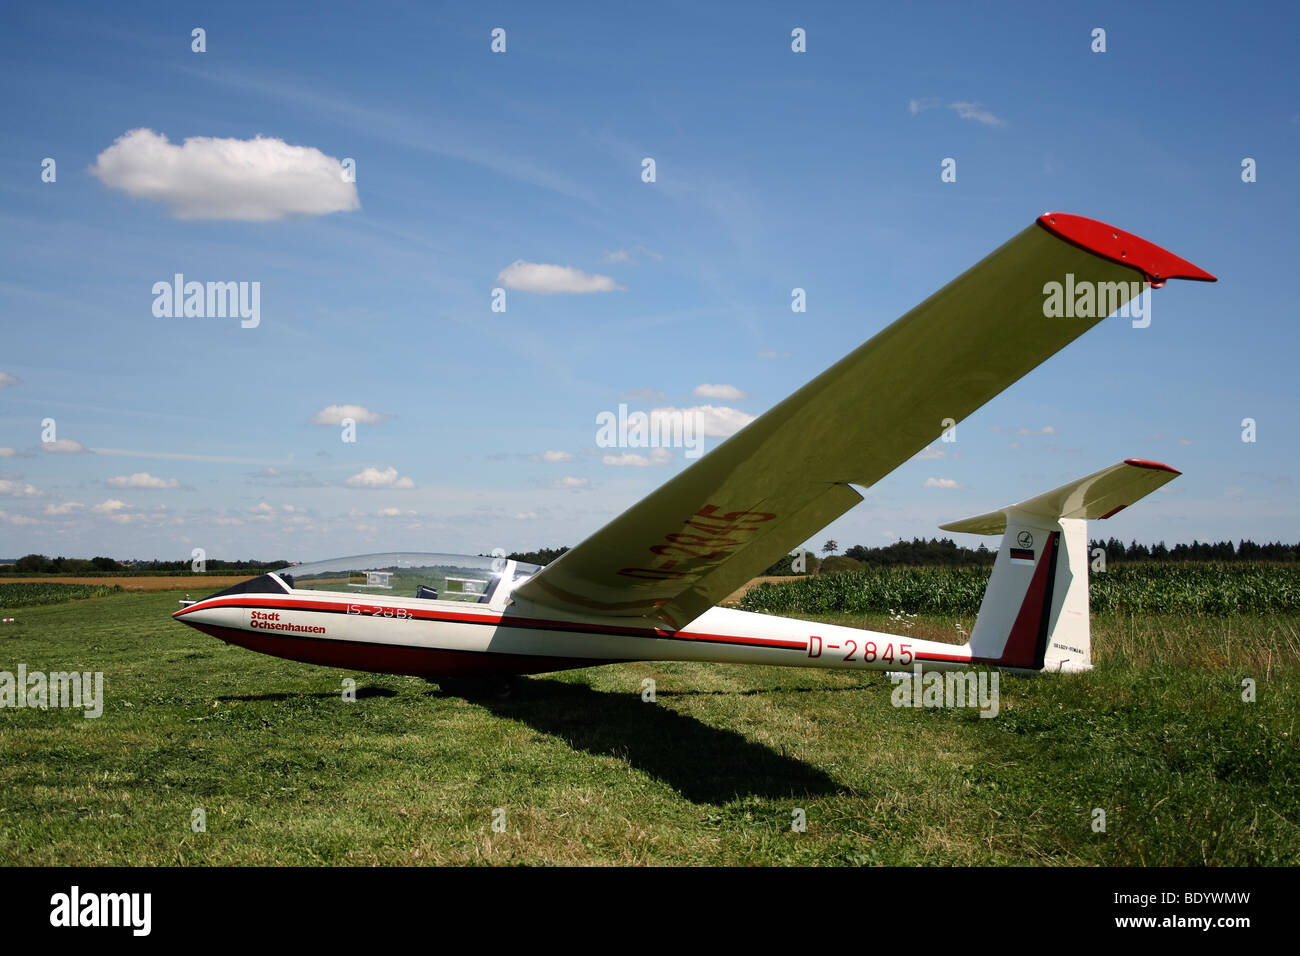 Glider on a mown lawn, ready for take-off - Stock Image